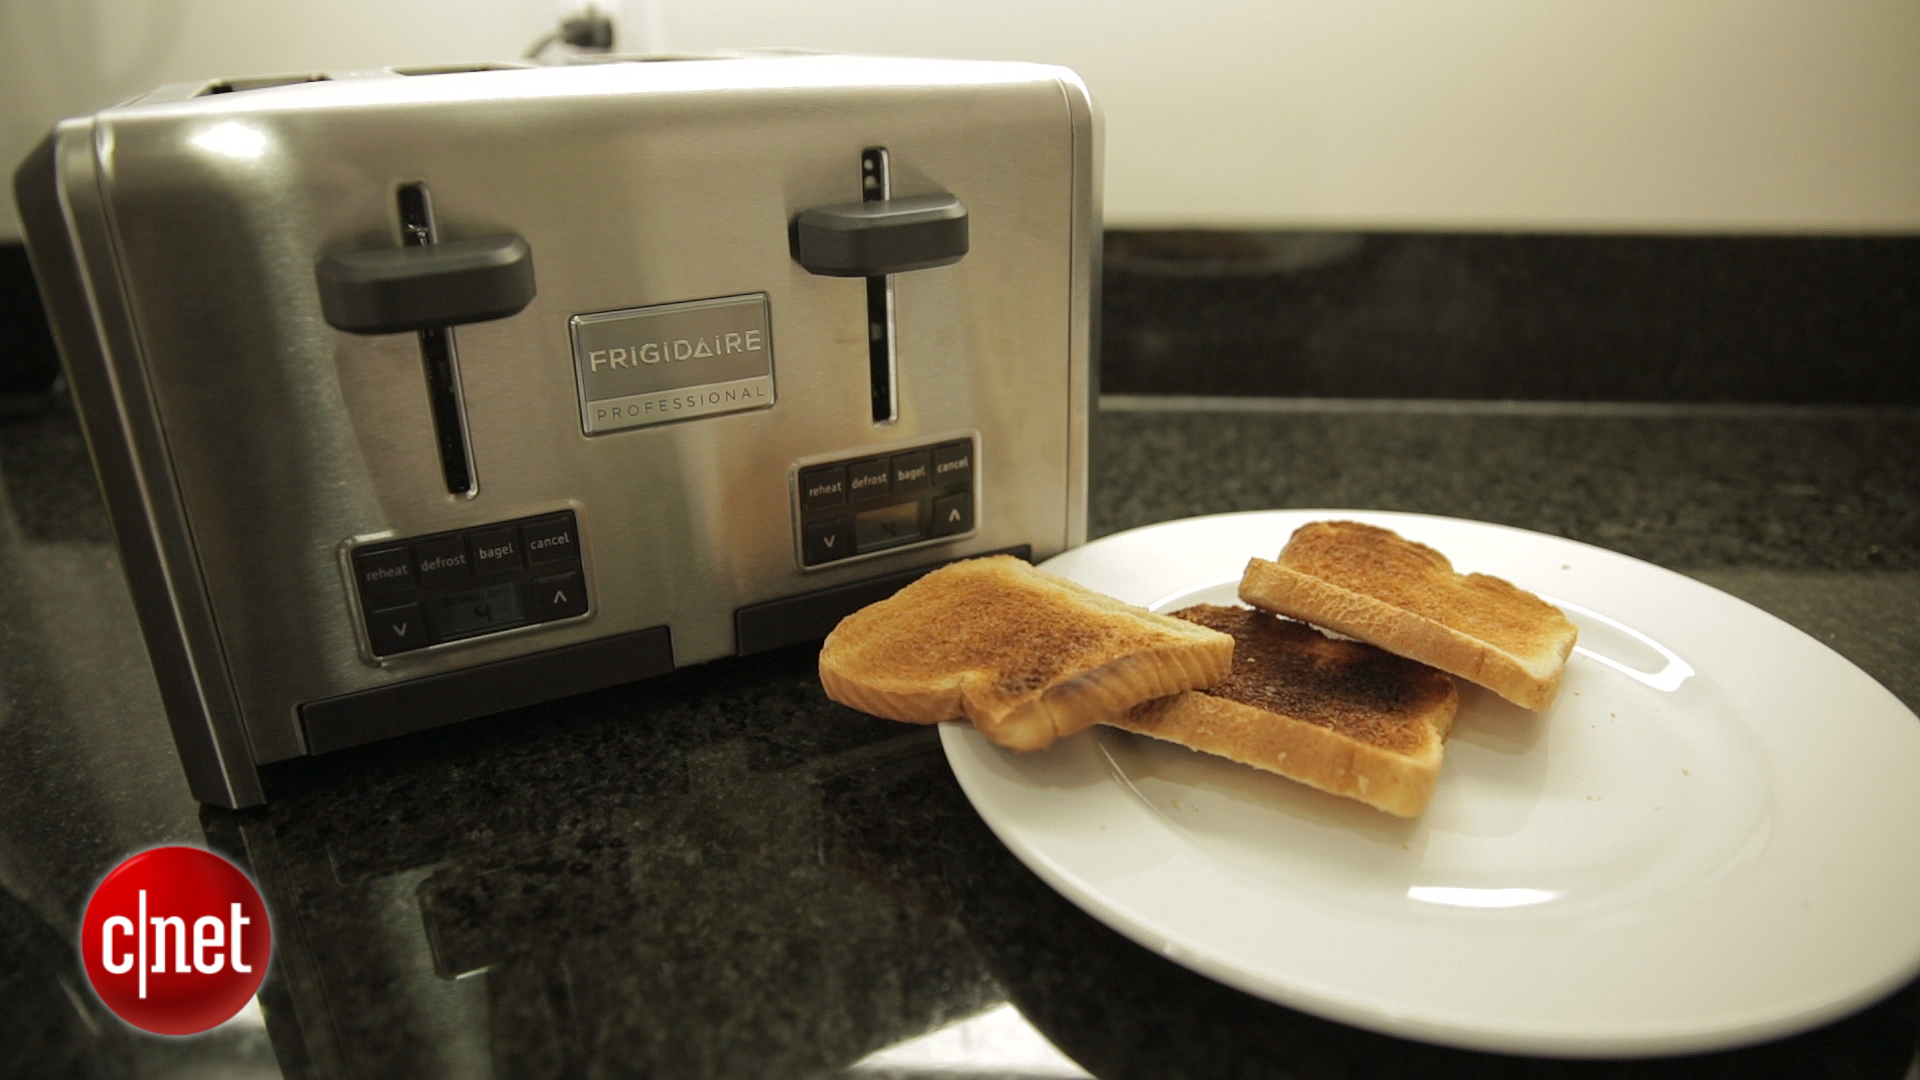 Video: Serious toasting from the $100 Frigidaire Pro